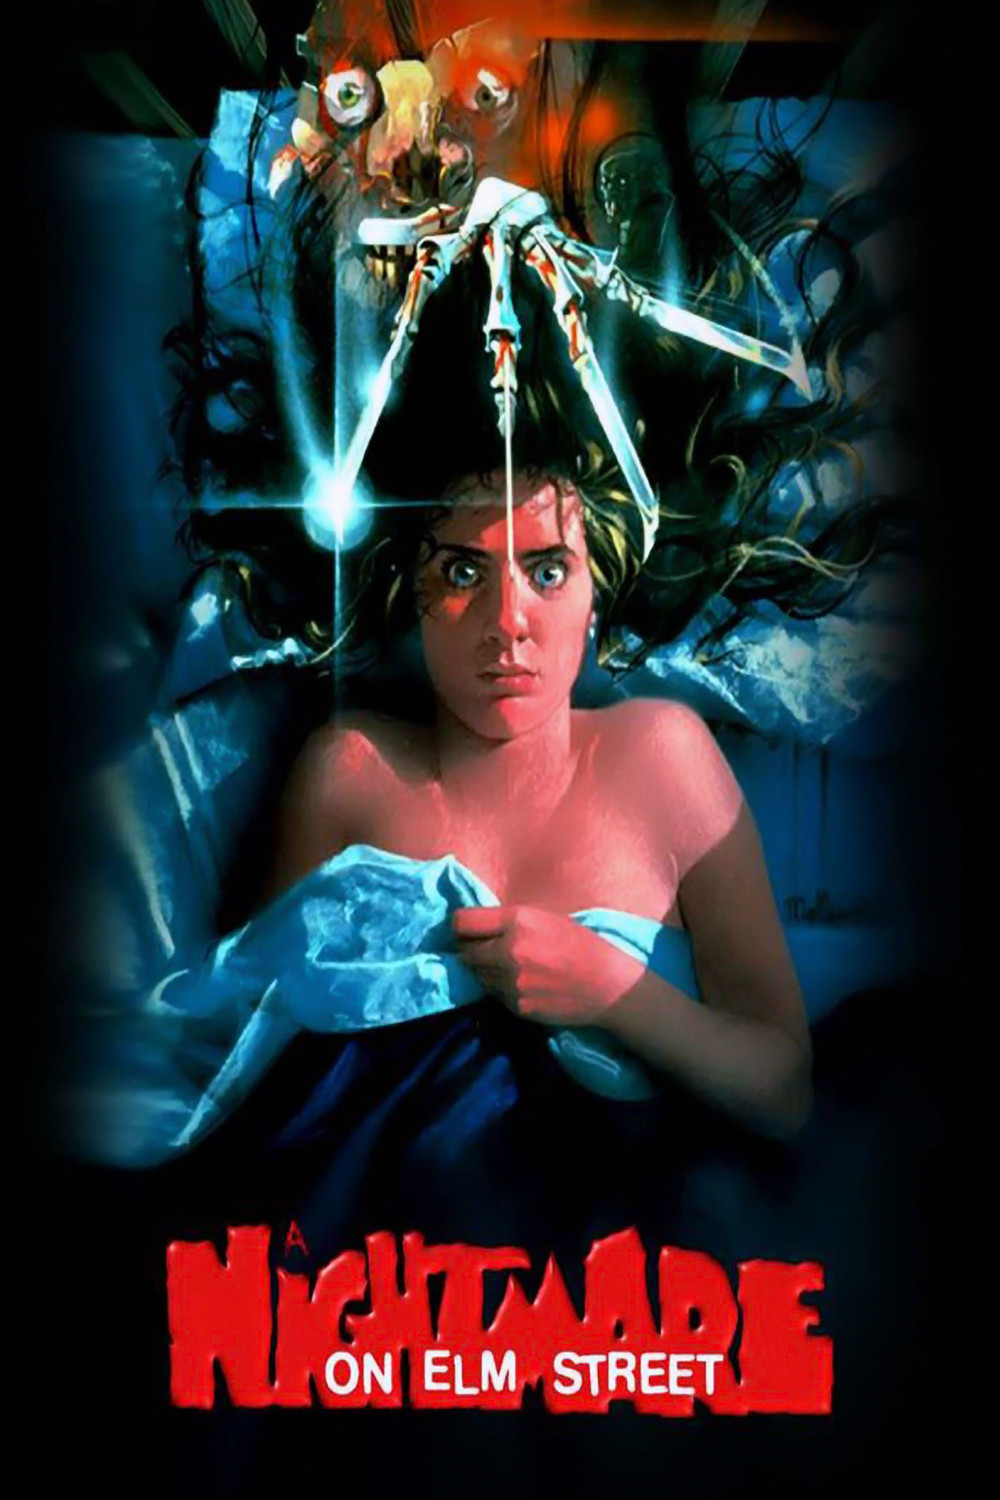 a-nightmare-on-elm-street-poster.jpeg